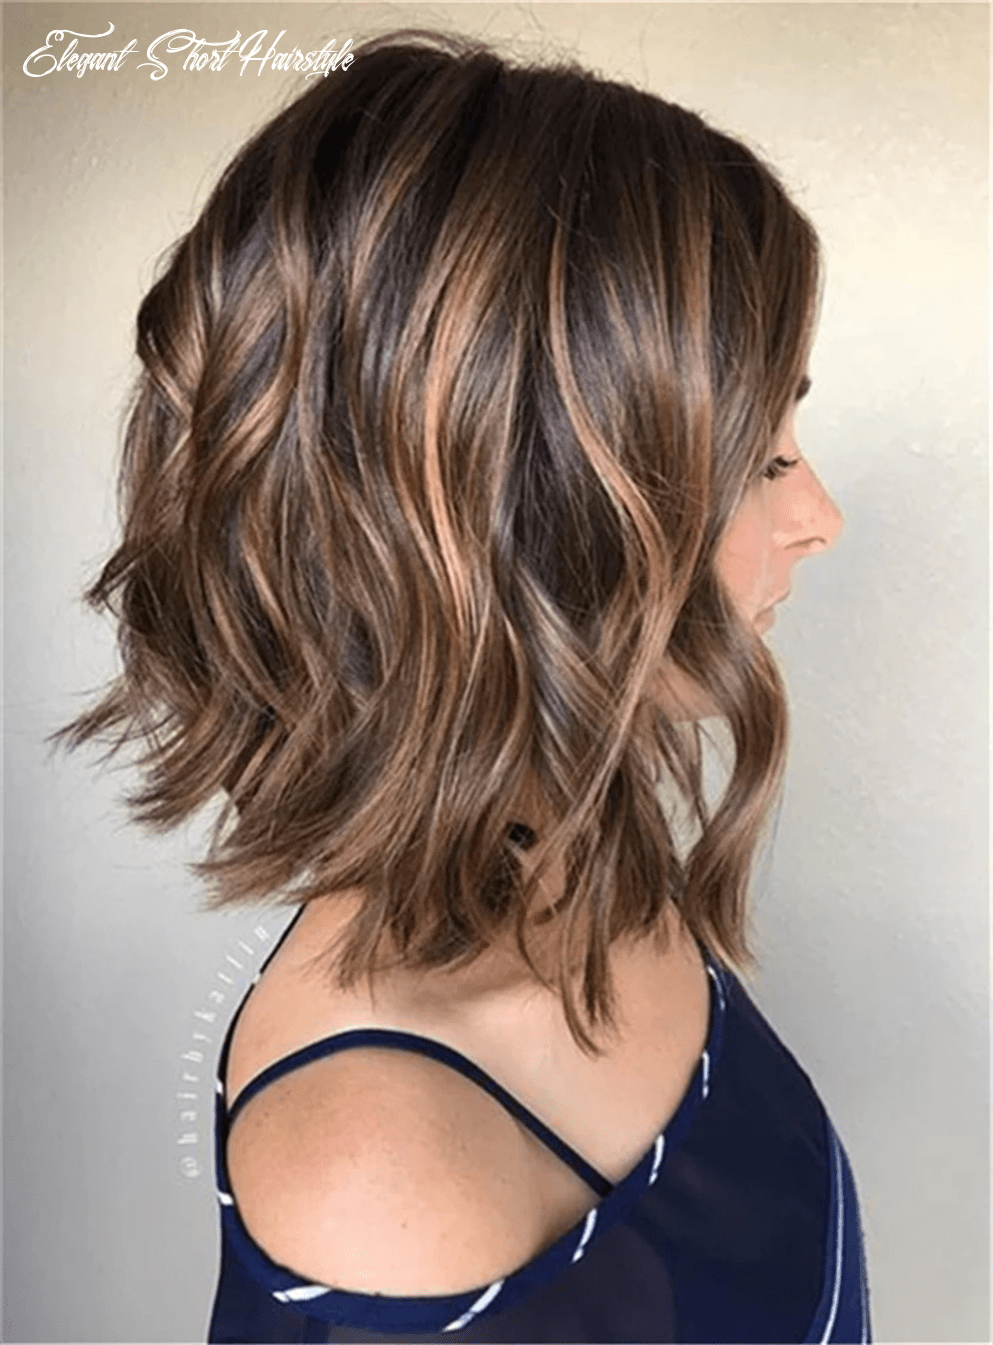 8 elegant short ombre hairstyles ideas for women you must try